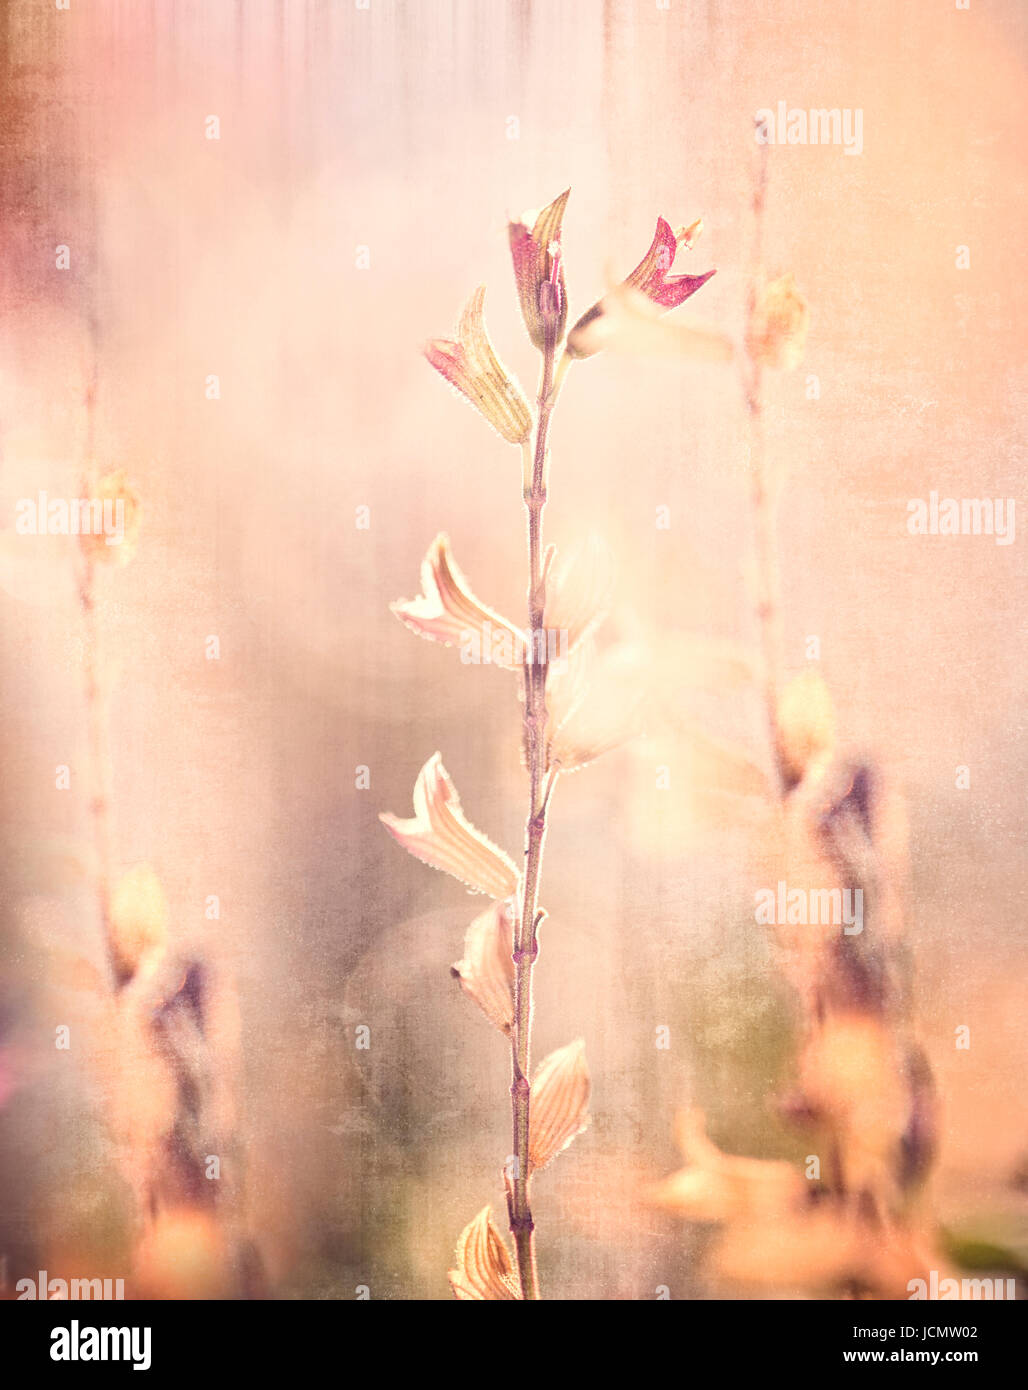 Textured Floral Background - Stock Image